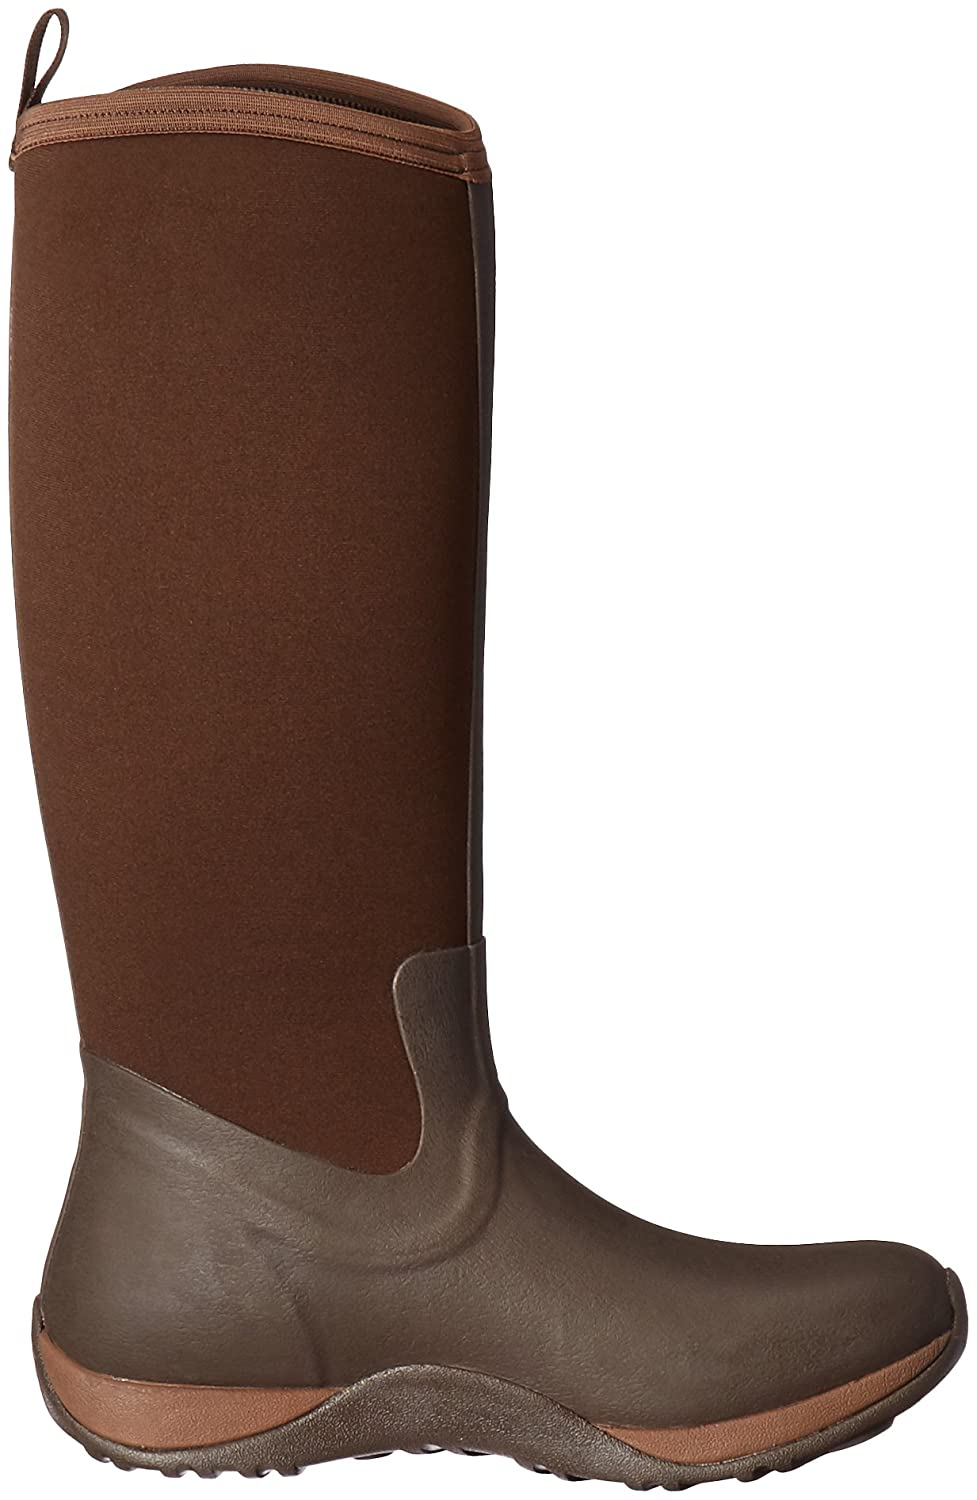 MuckBoots Boot Women's Artic Adventure Snow Boot MuckBoots B00IHWA5H6 8 B(M) US|Chocolate/Bison 04c176